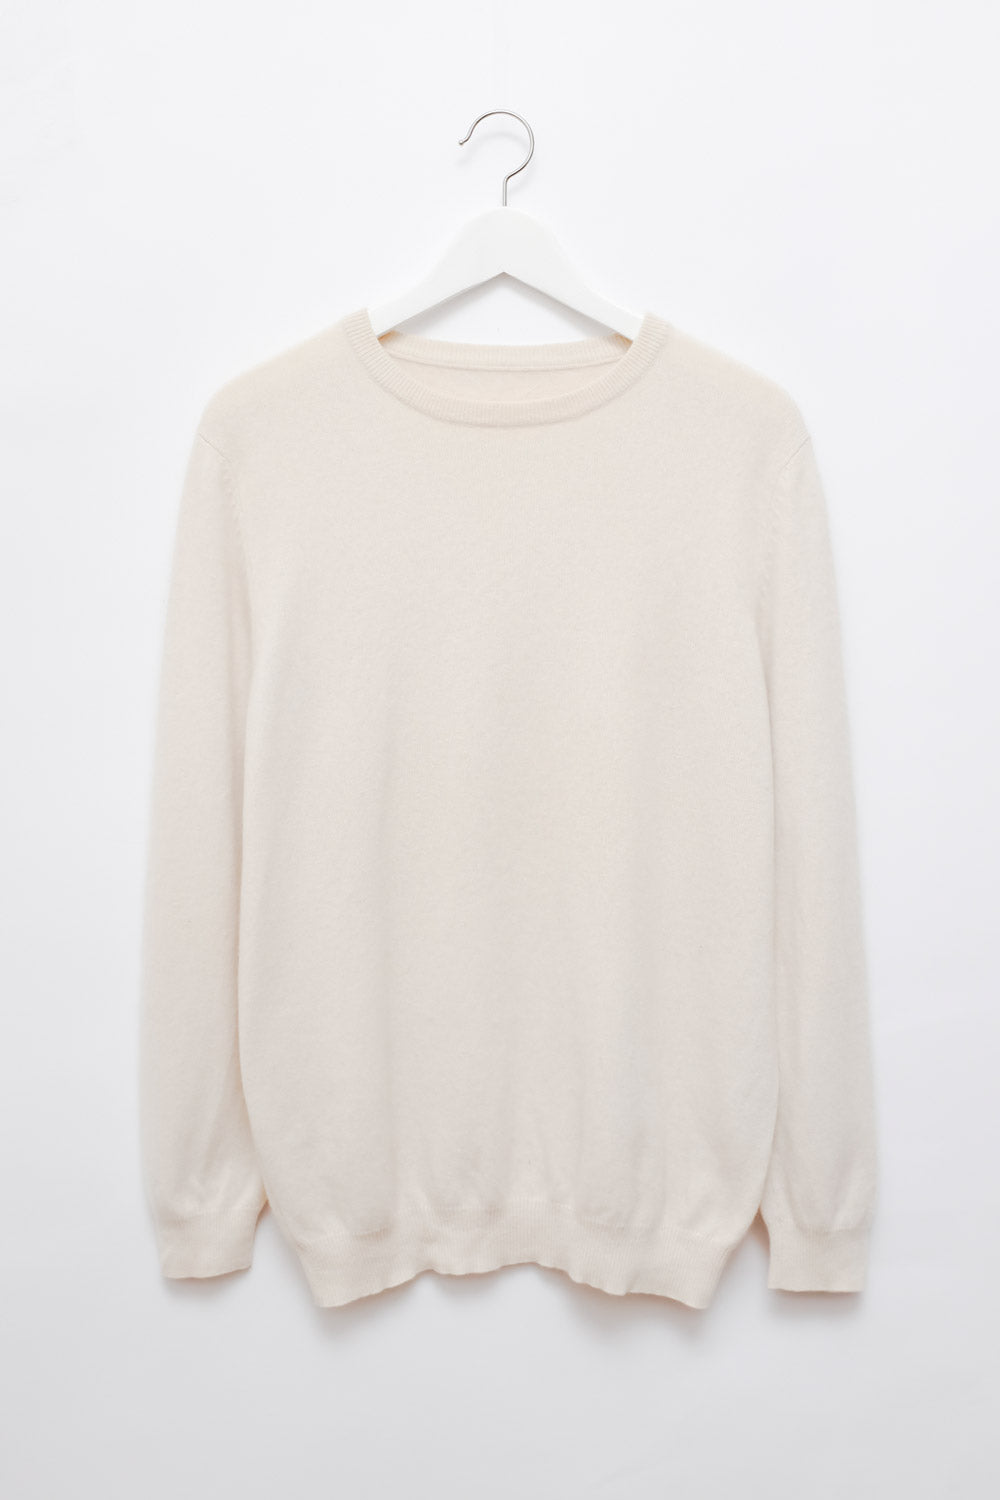 0017_IVORY CASHMERE SWEATER